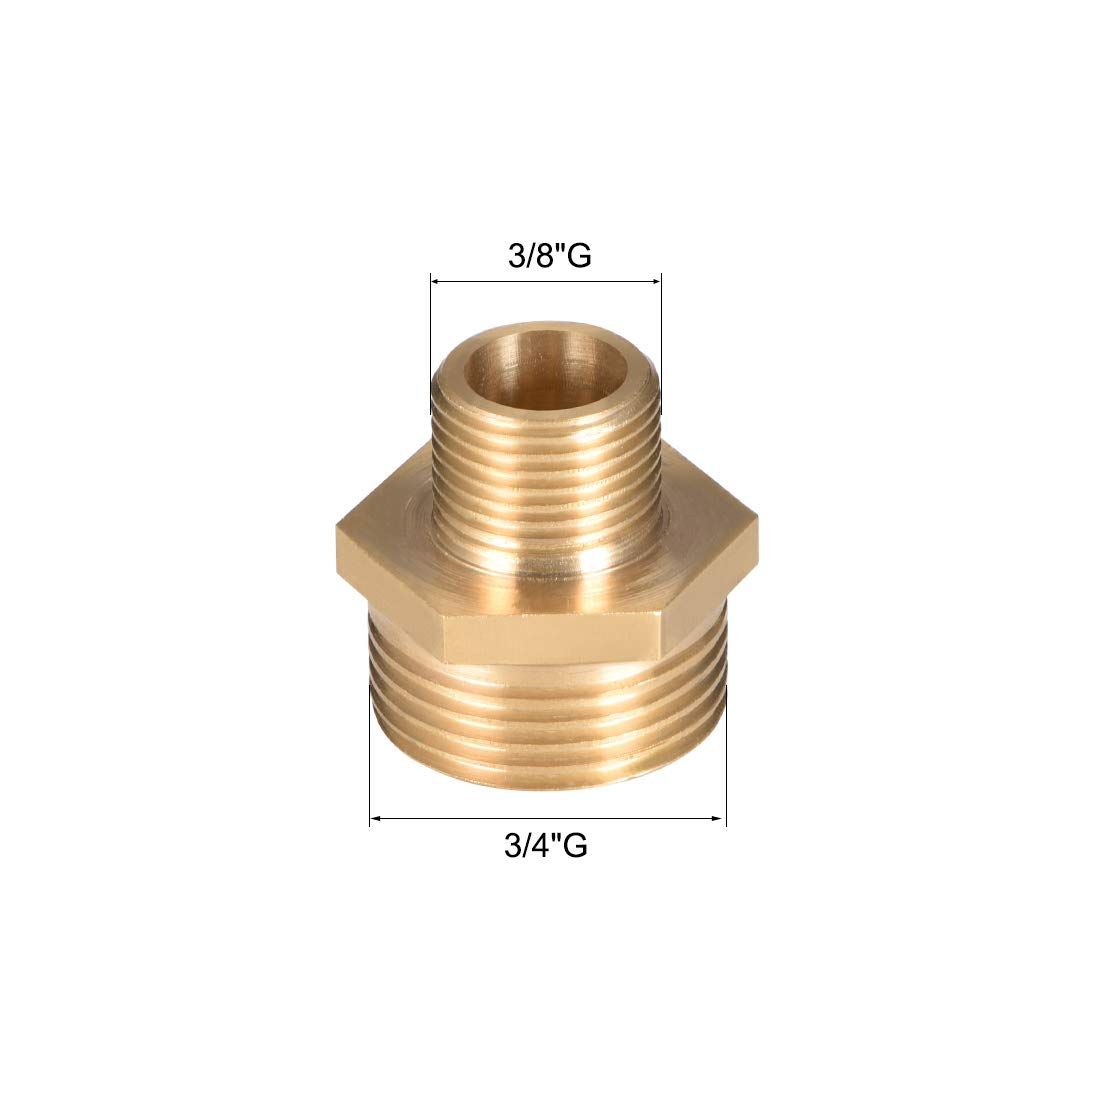 uxcell Brass Pipe Reducing Hex Nipple Fitting 1//4 G Male x 1//8 G Male Connector Gold Tone 4pcs